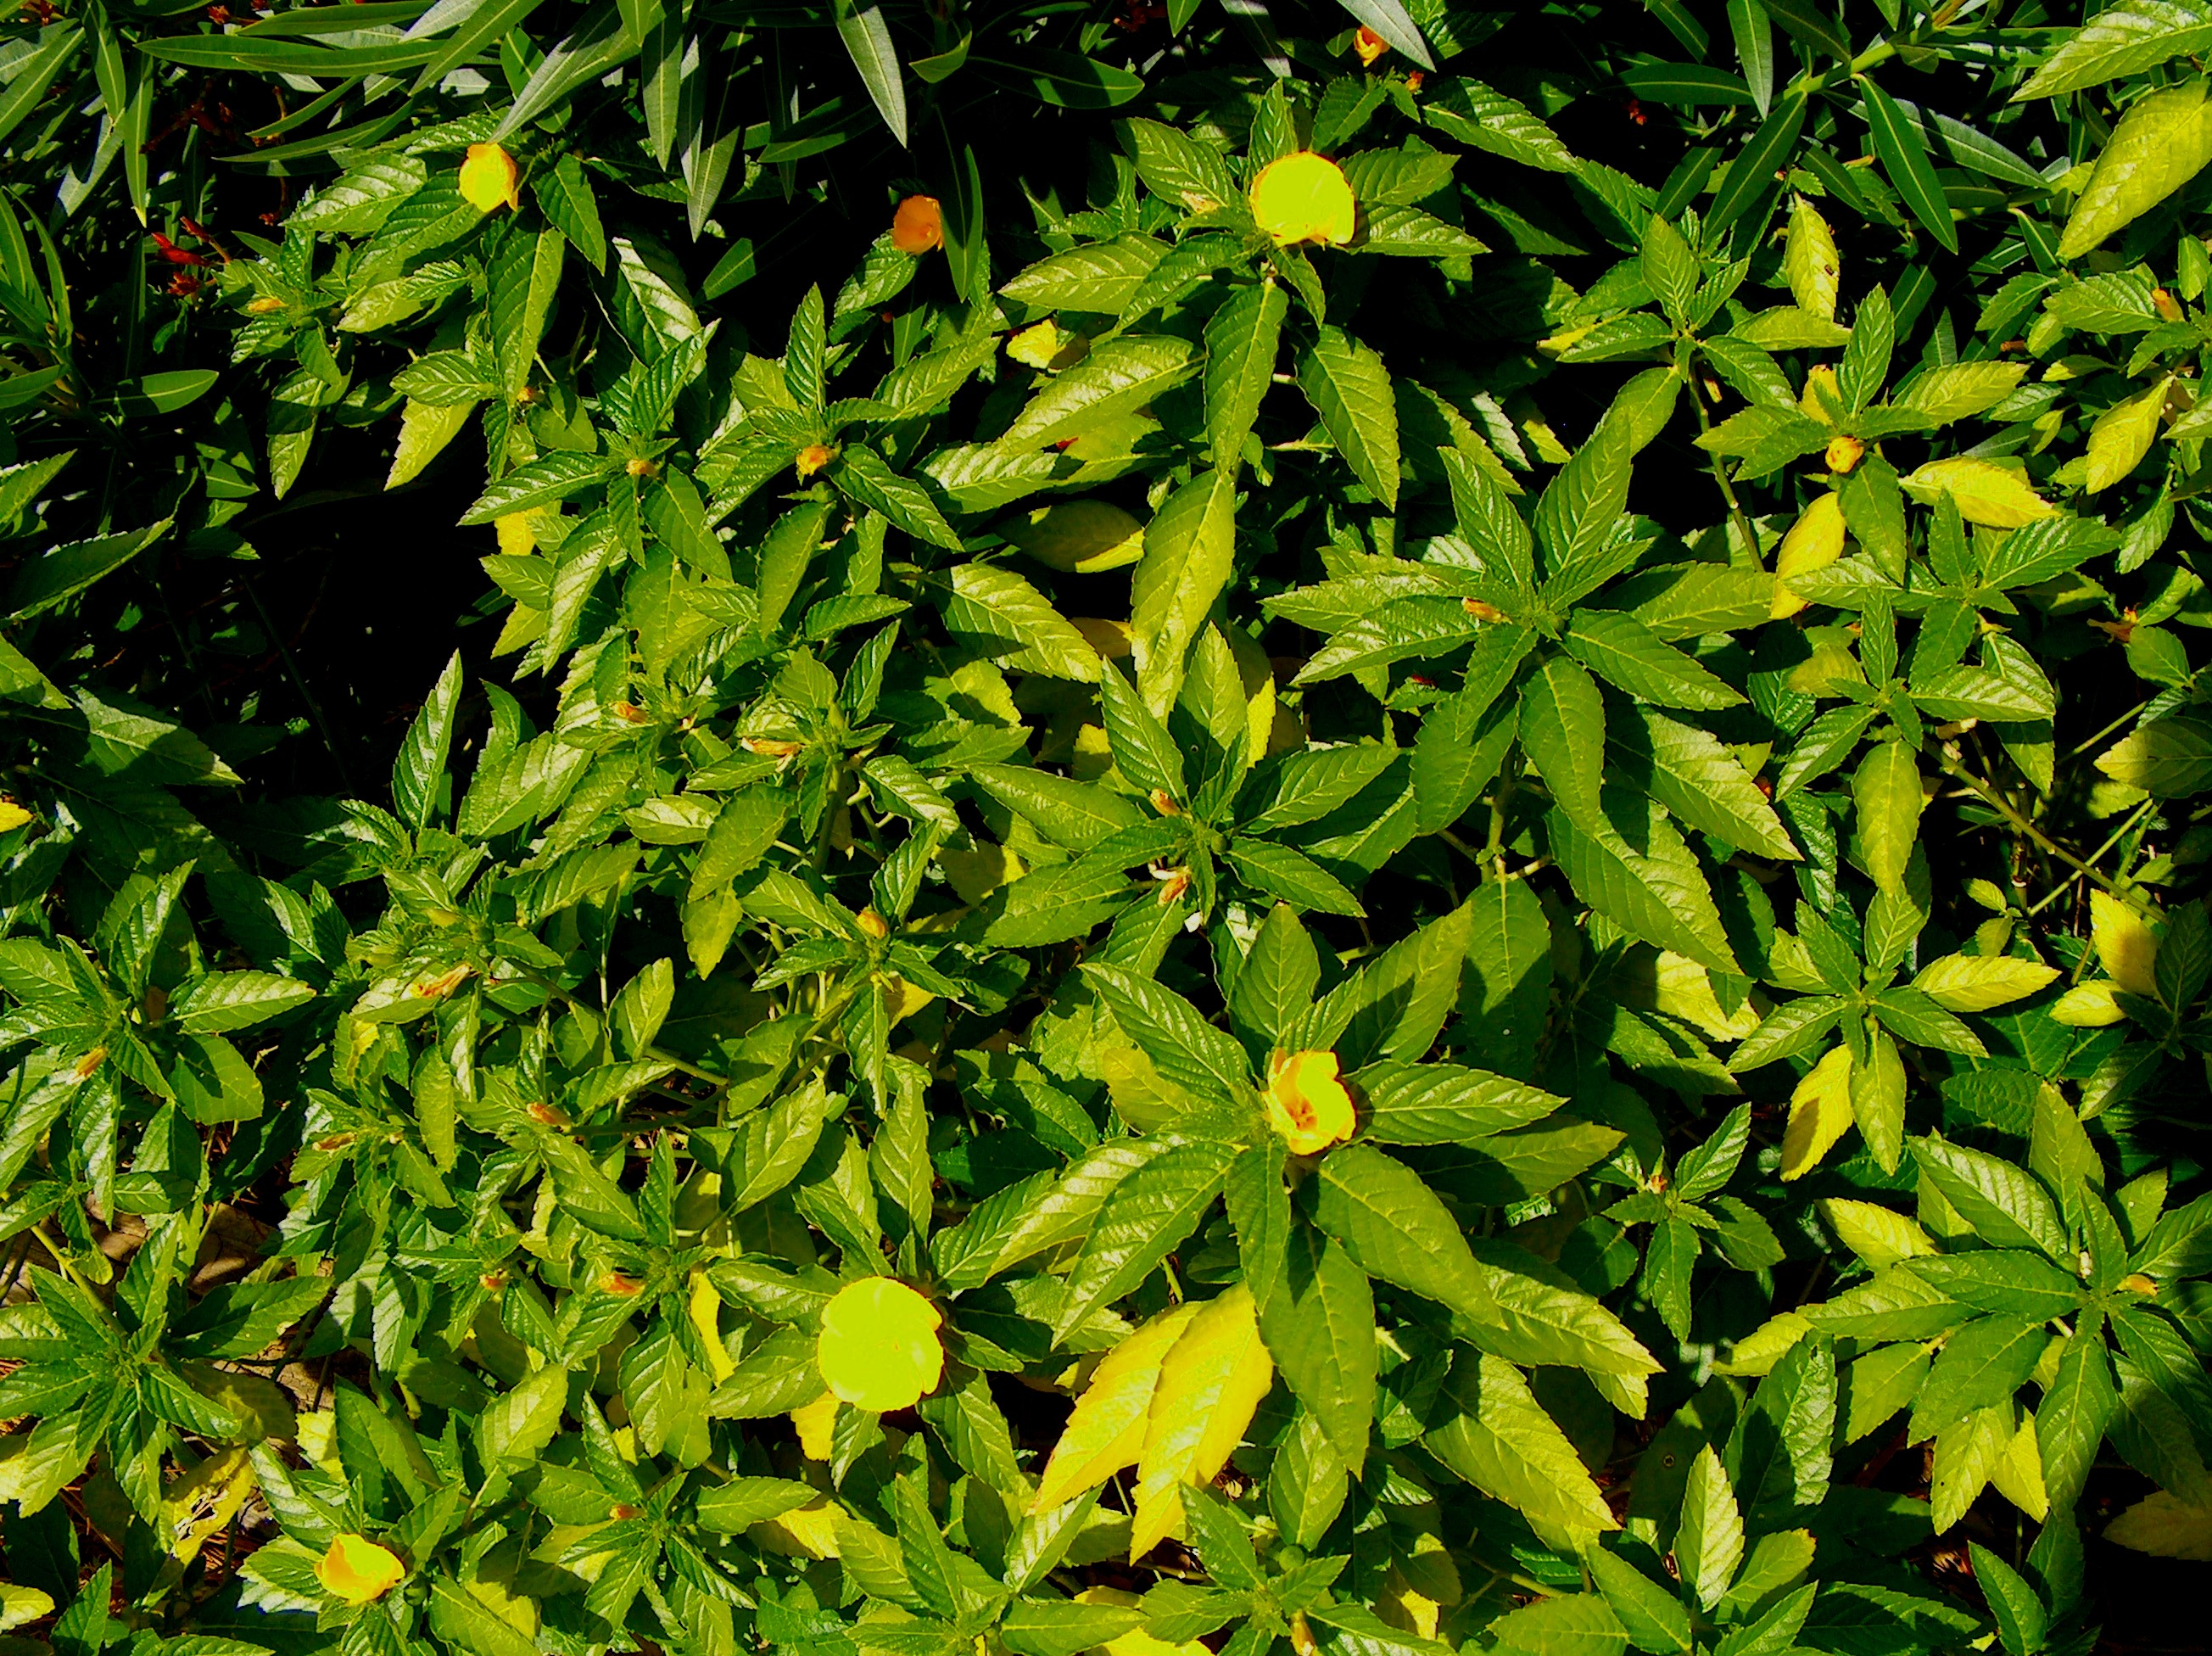 Turnera ulmifolia  / Turnera ulmifolia